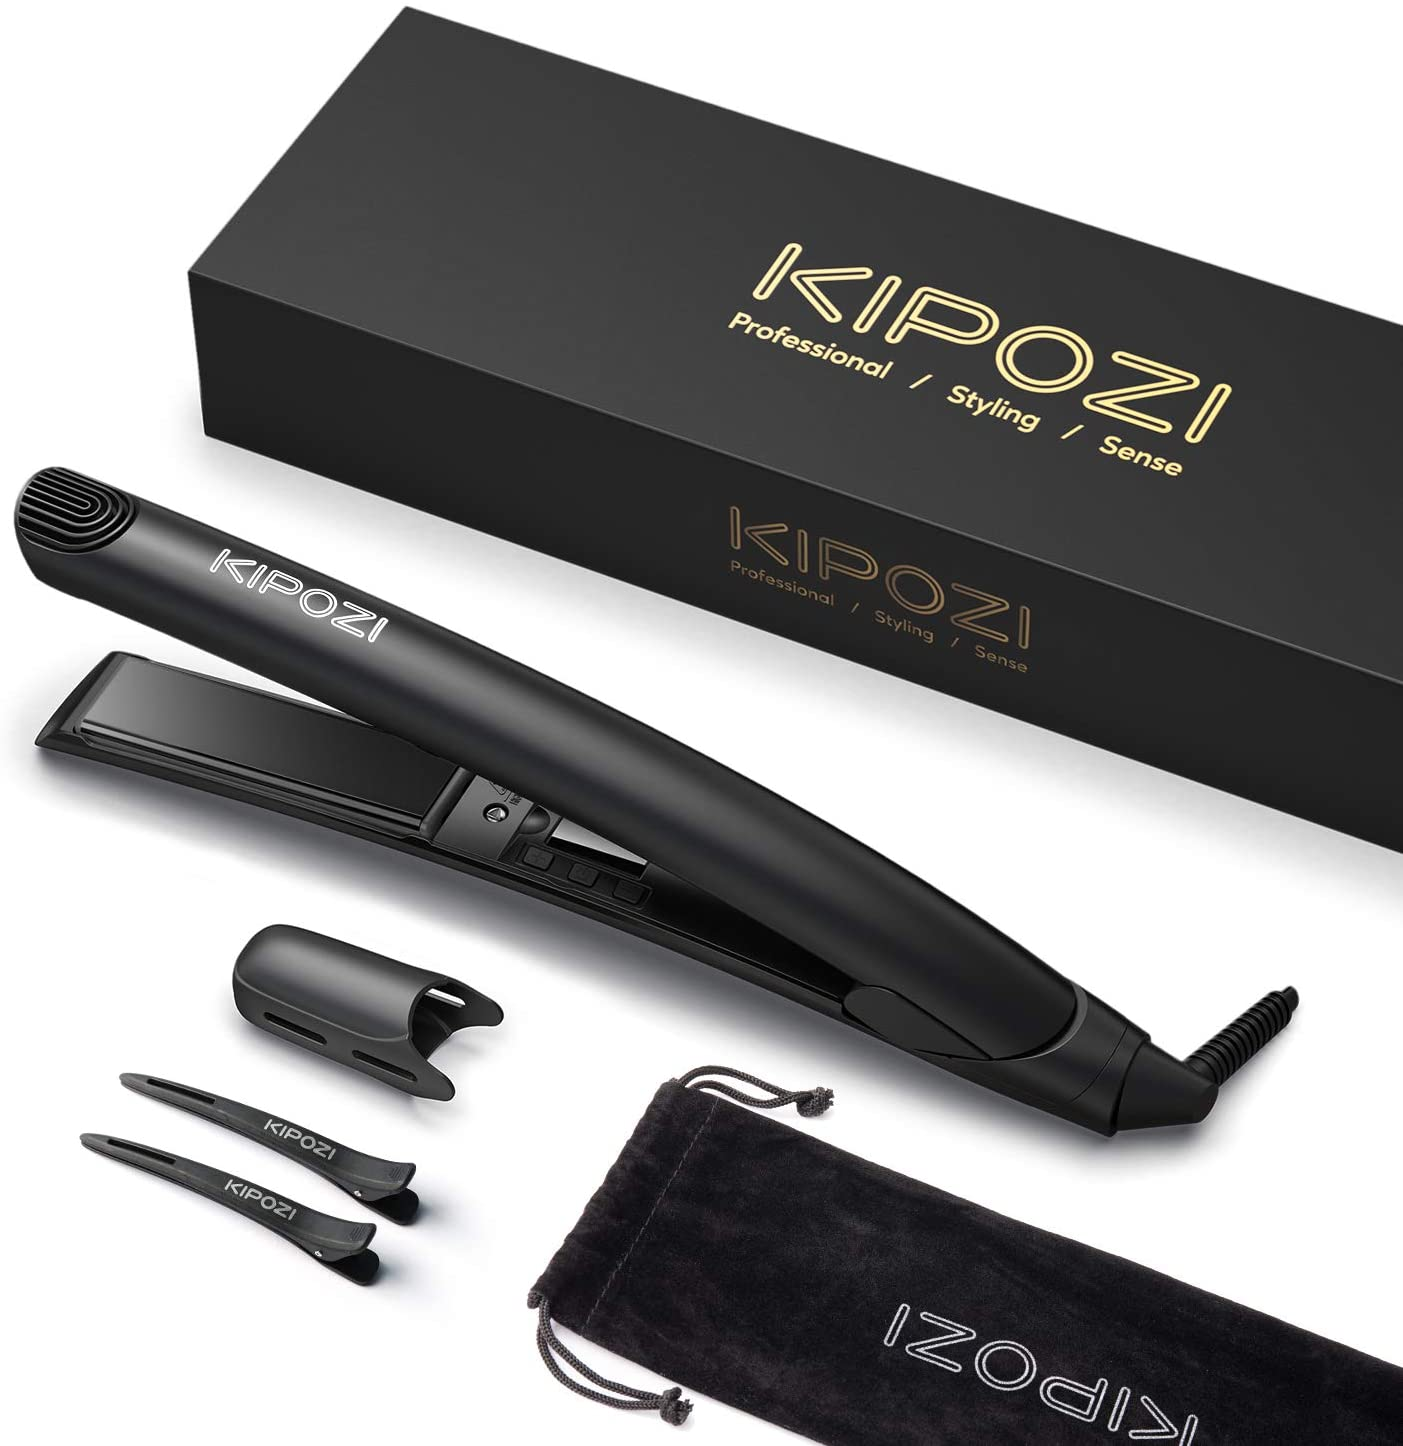 KIPOZI Travel Ceramic Flat Iron for Flipping Hair Ionic 2 in 1 Curler and Hair Straightener